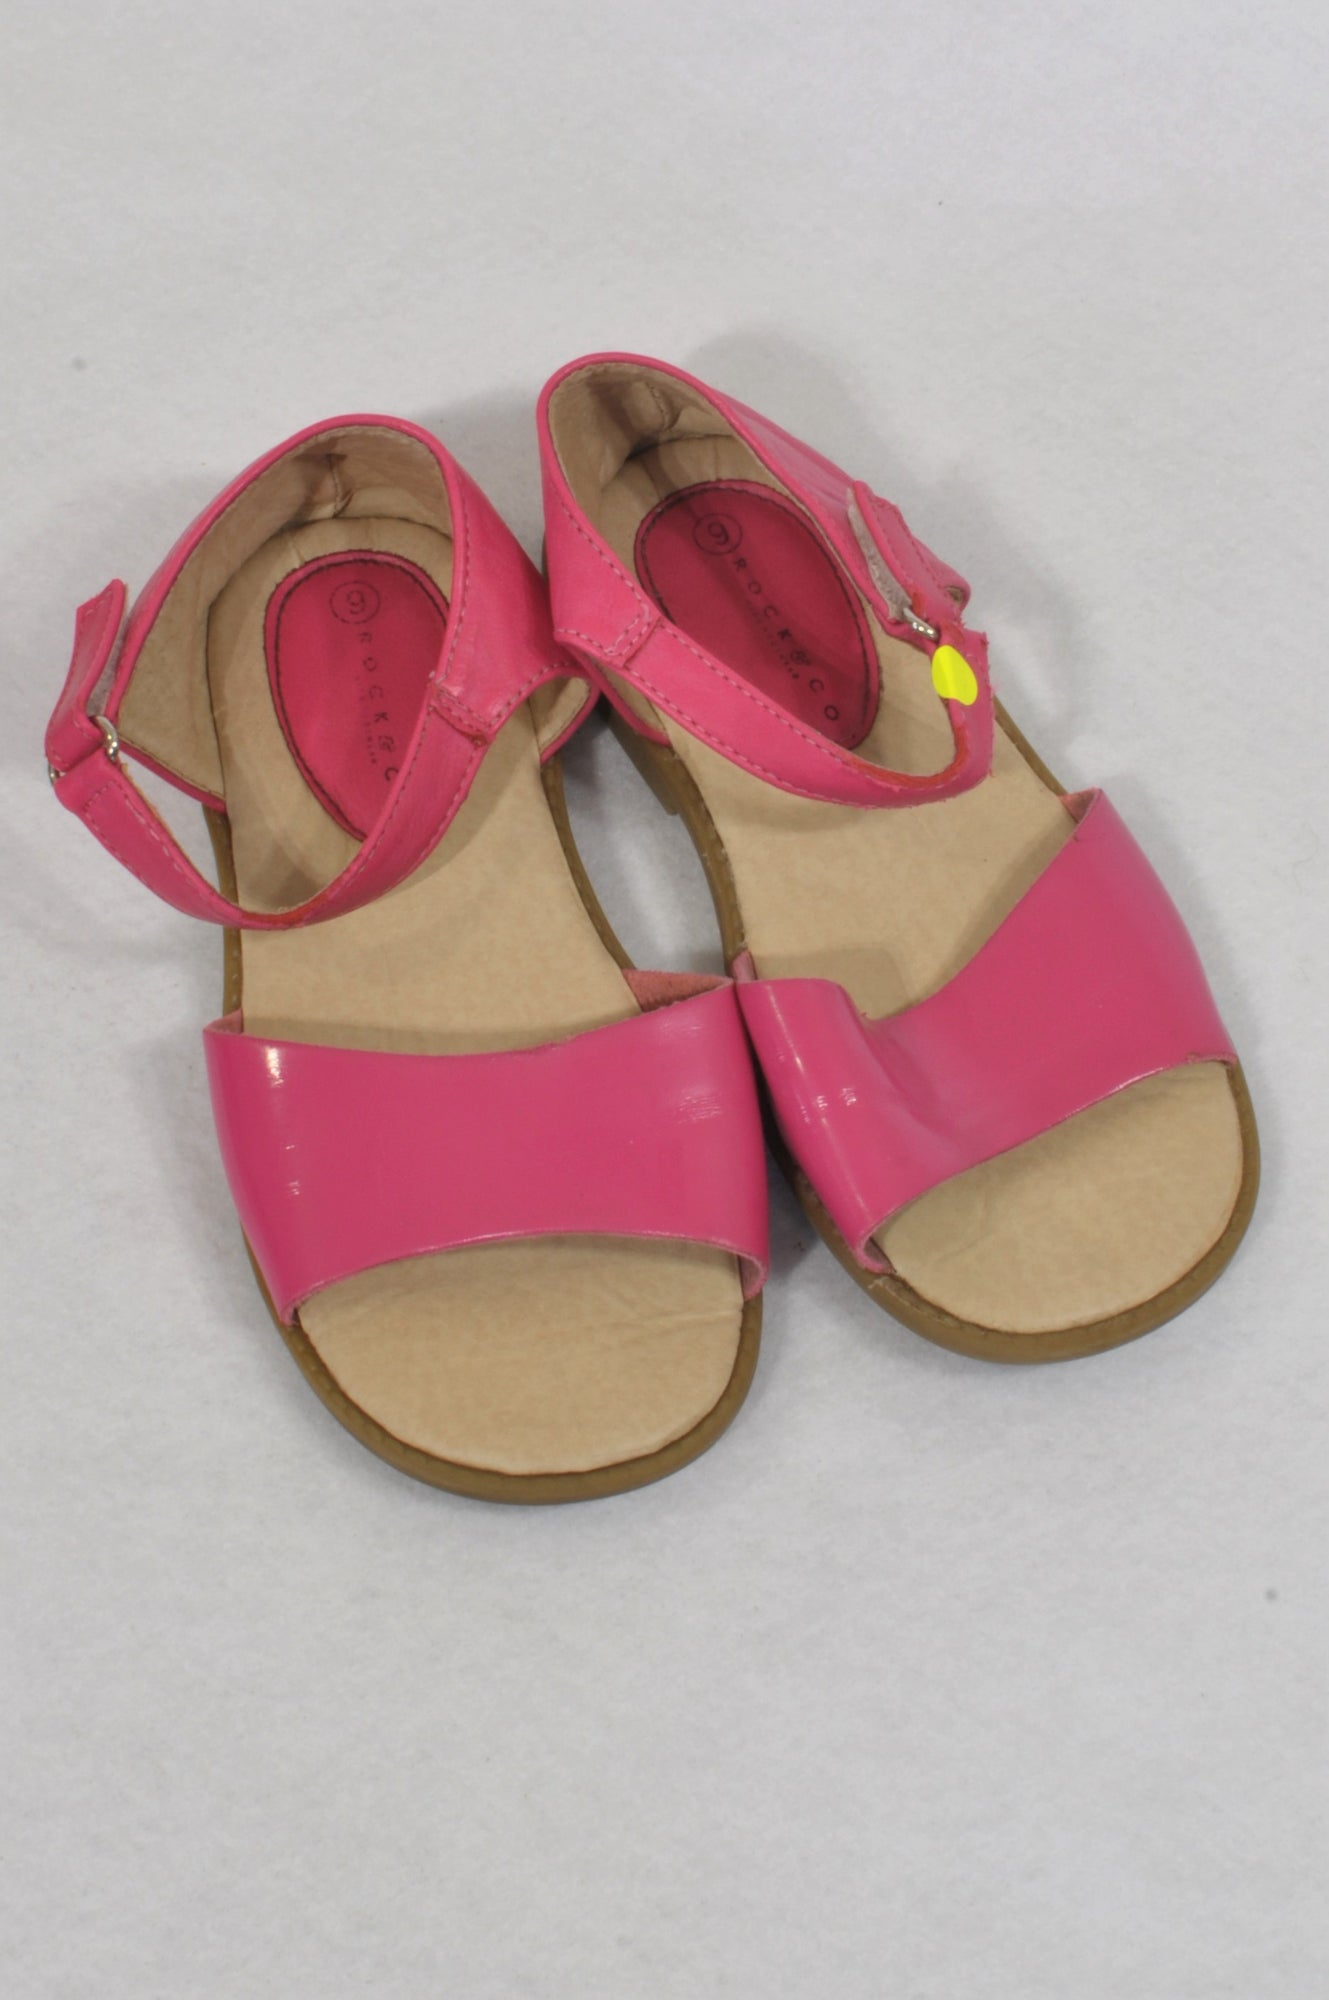 Rock & Co Size 9 Hot Pink Wide Strap Sandals Girls 3-4 years